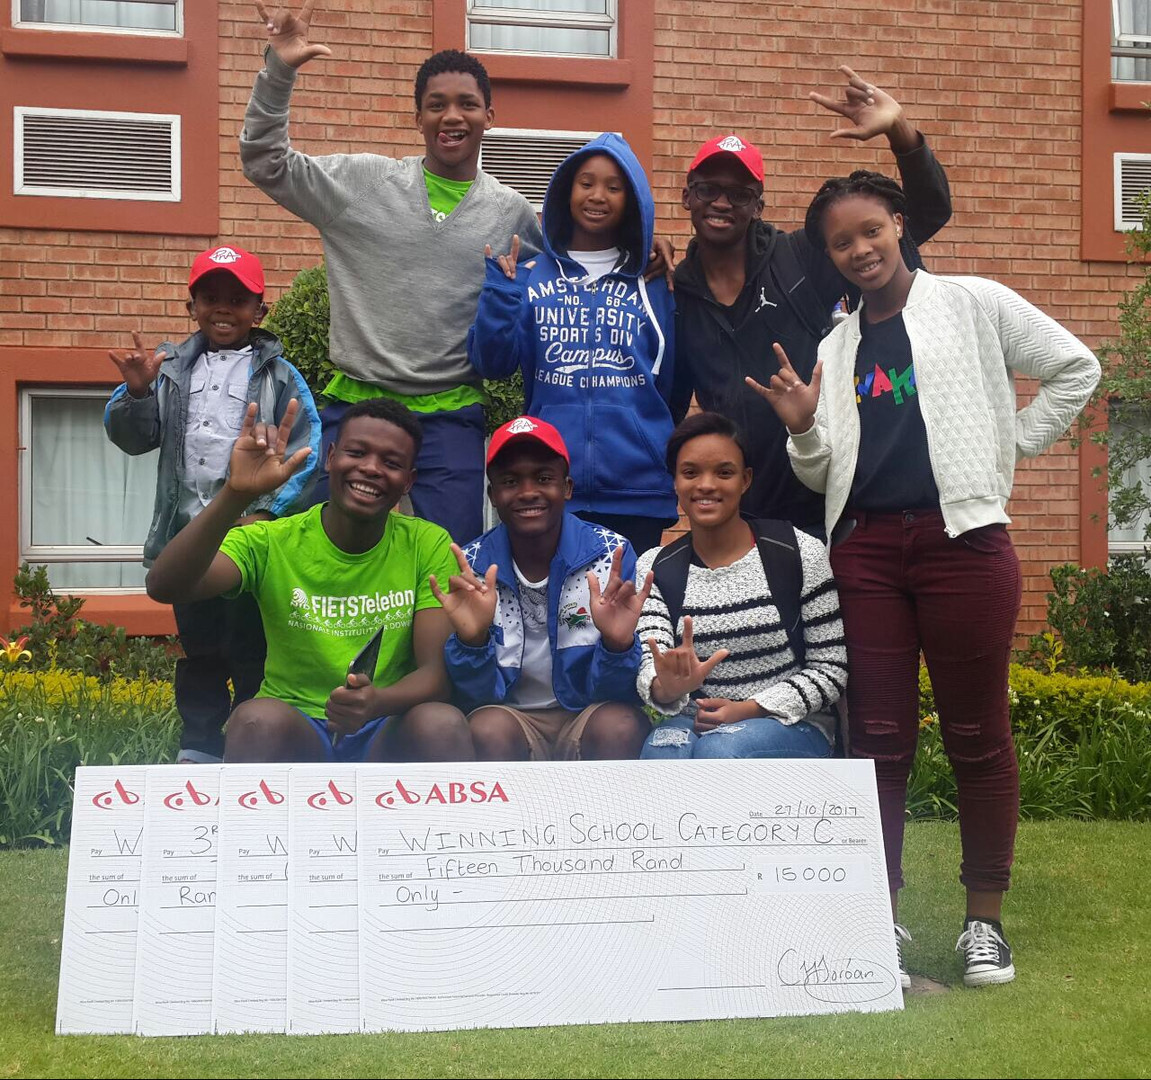 Bongani, Mbeketeli and their classmates celebrate their victories at Zwakala